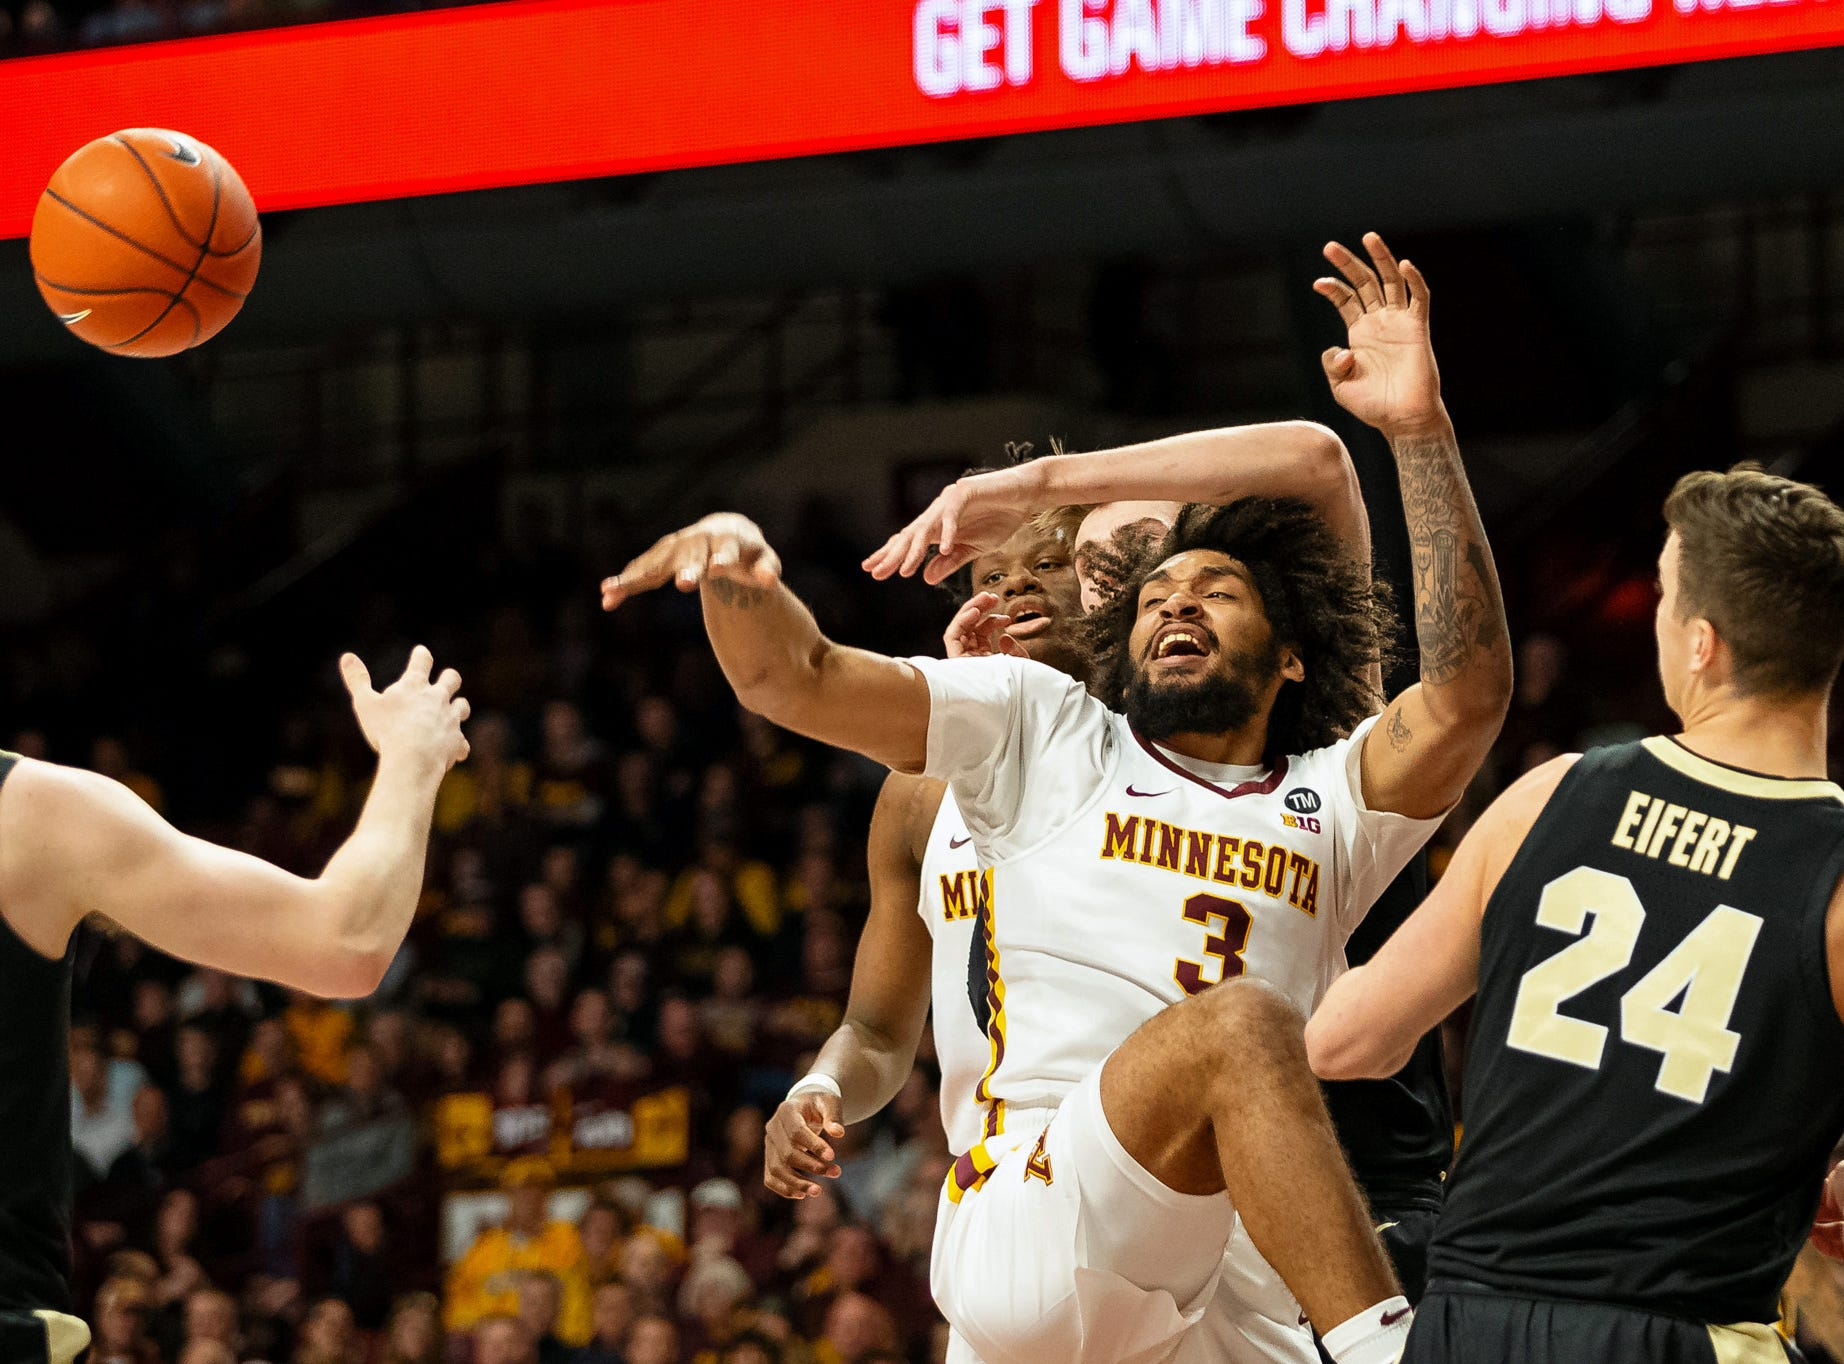 Mar 5, 2019; Minneapolis, MN, USA; Minnesota Gophers forward Jordan Murphy (3) shot is broken up during the first half against the Purdue Boilermakers at Williams Arena. Mandatory Credit: Harrison Barden-USA TODAY Sports